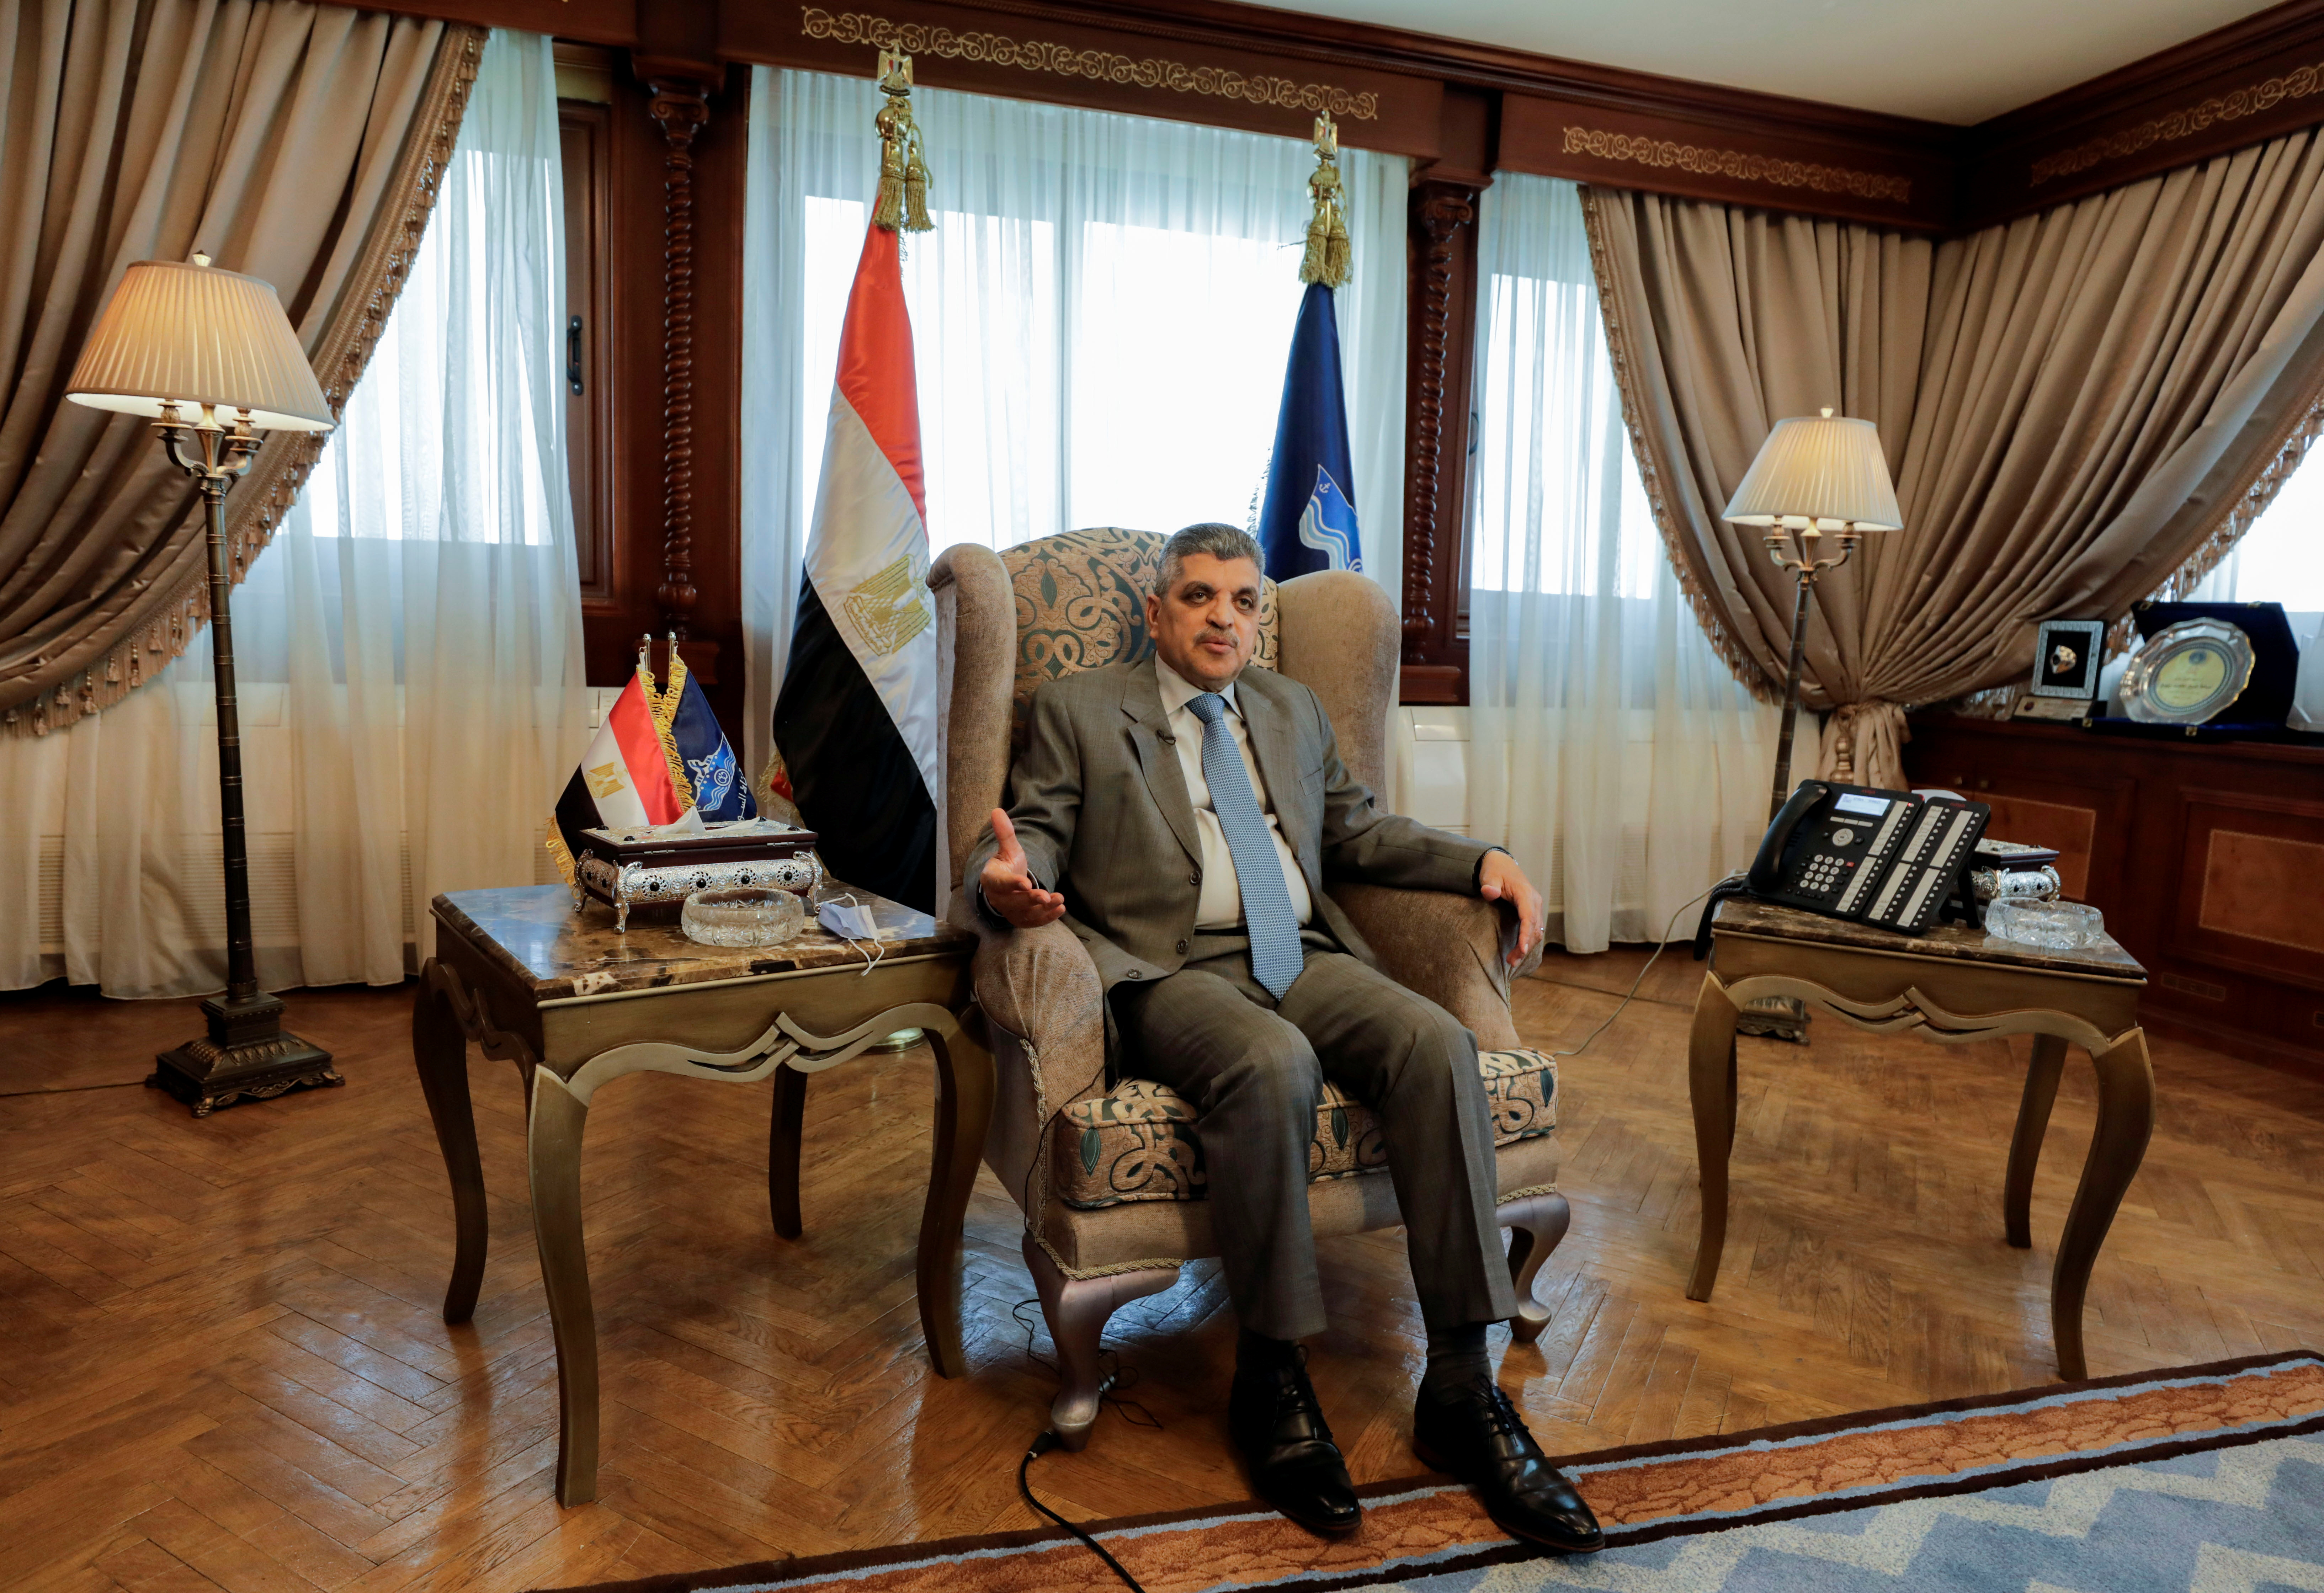 Osama Rabie, Chairman of the Suez Canal Authority, speaks during an interview with Reuters in his office in the city of Ismailia, Egypt April 6, 2021. REUTERS/Mohamed Abd El Ghany